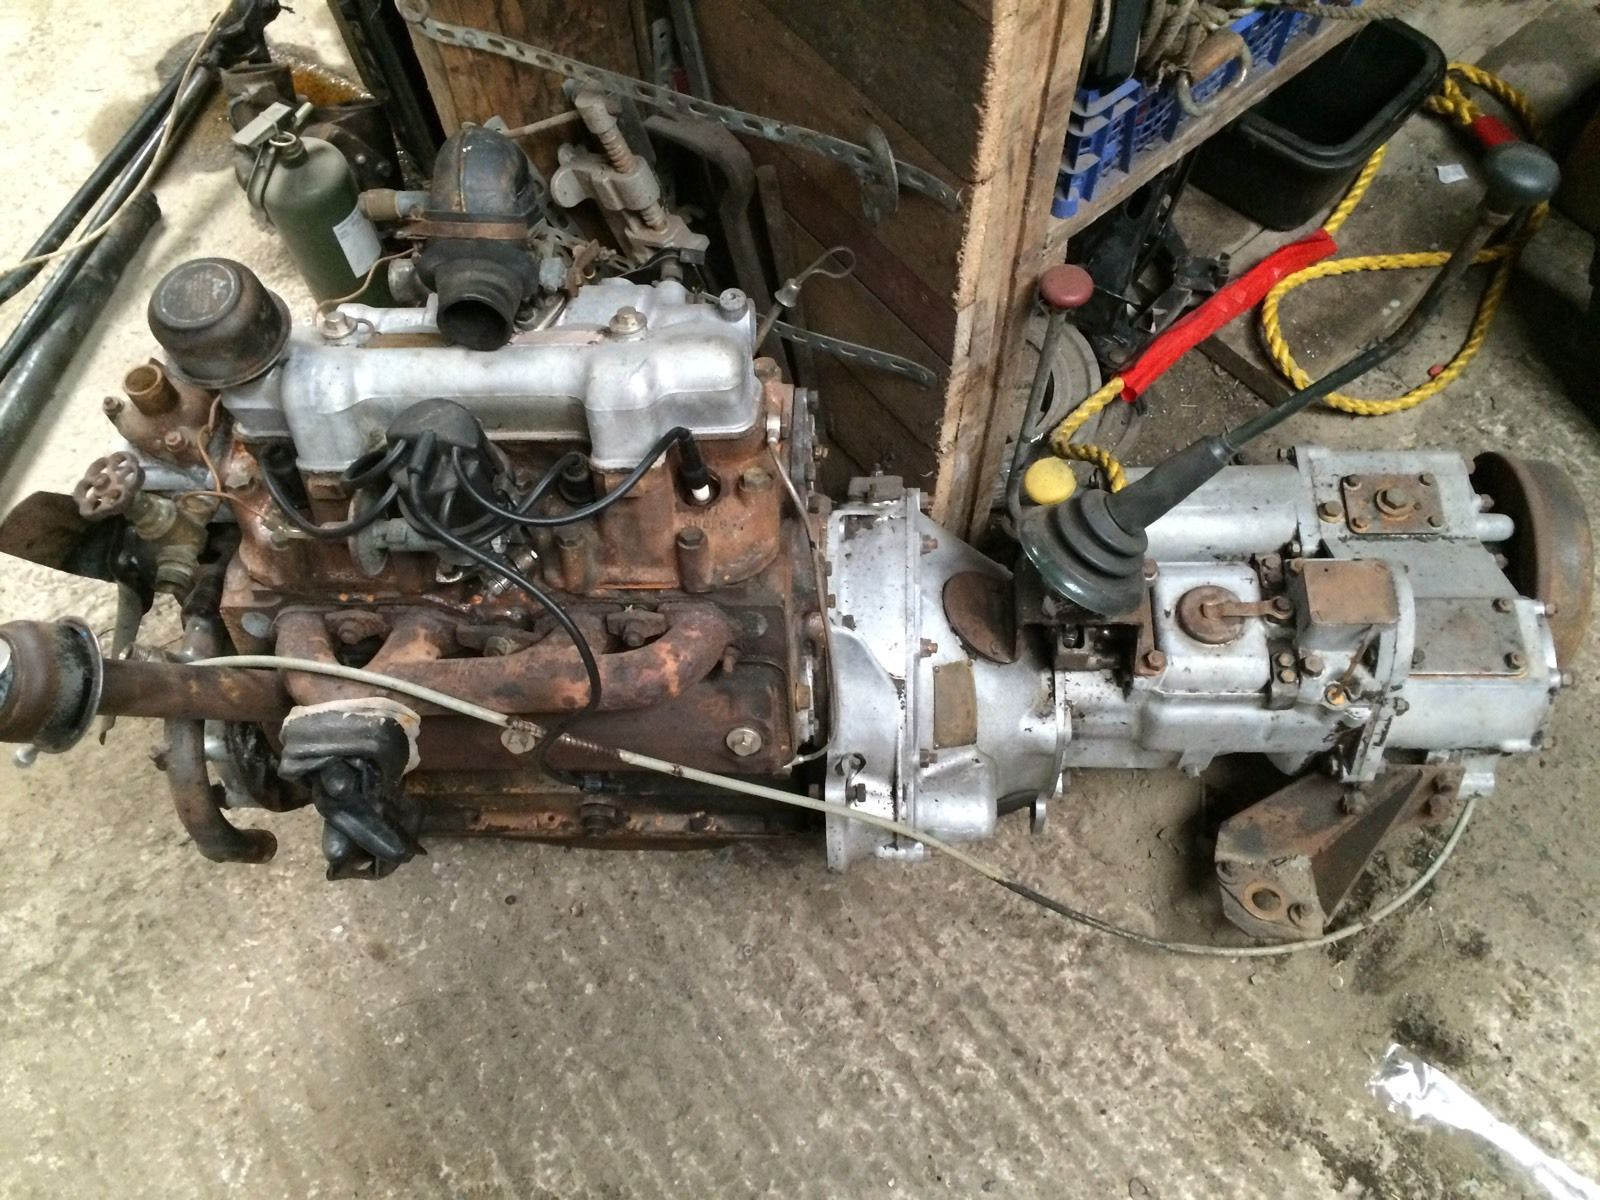 live british just with july ebay watch range restoration landrover rover motors to silverstone be parts at in restored from land